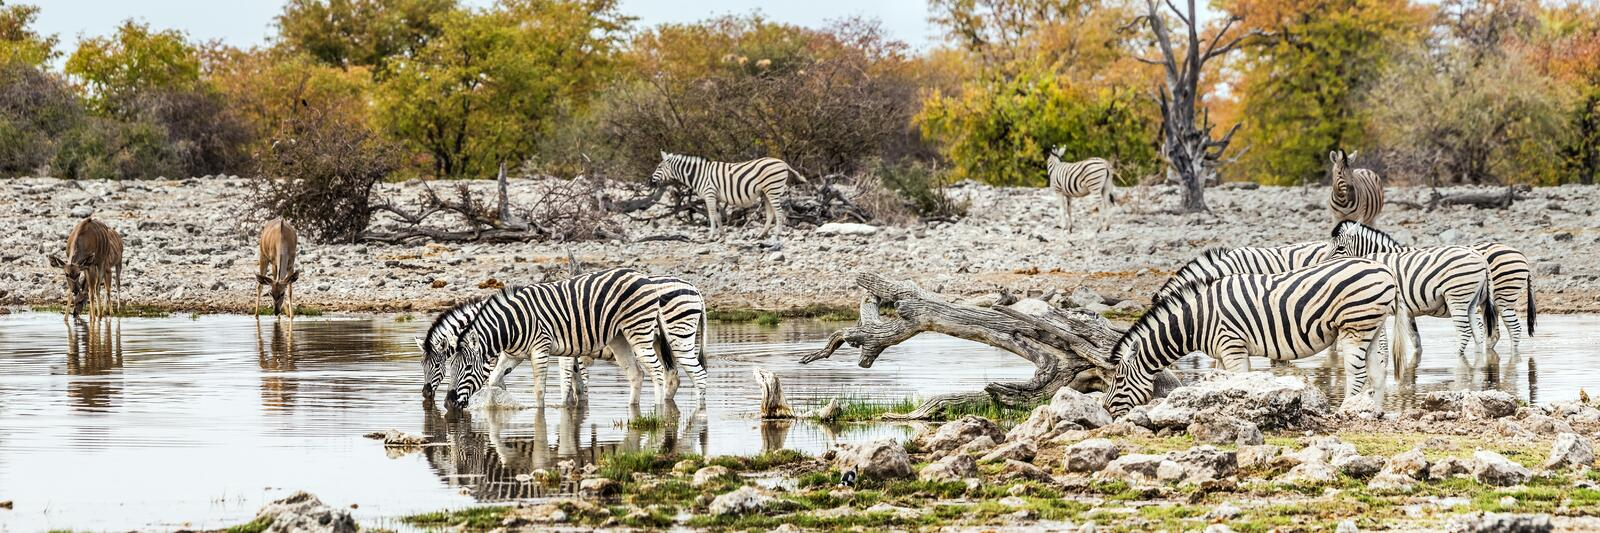 Panoramic view of Goas waterhole with Greater Kudu antelopes and Burchell`s zebras drinking. Etosha national park, Namibia stock images